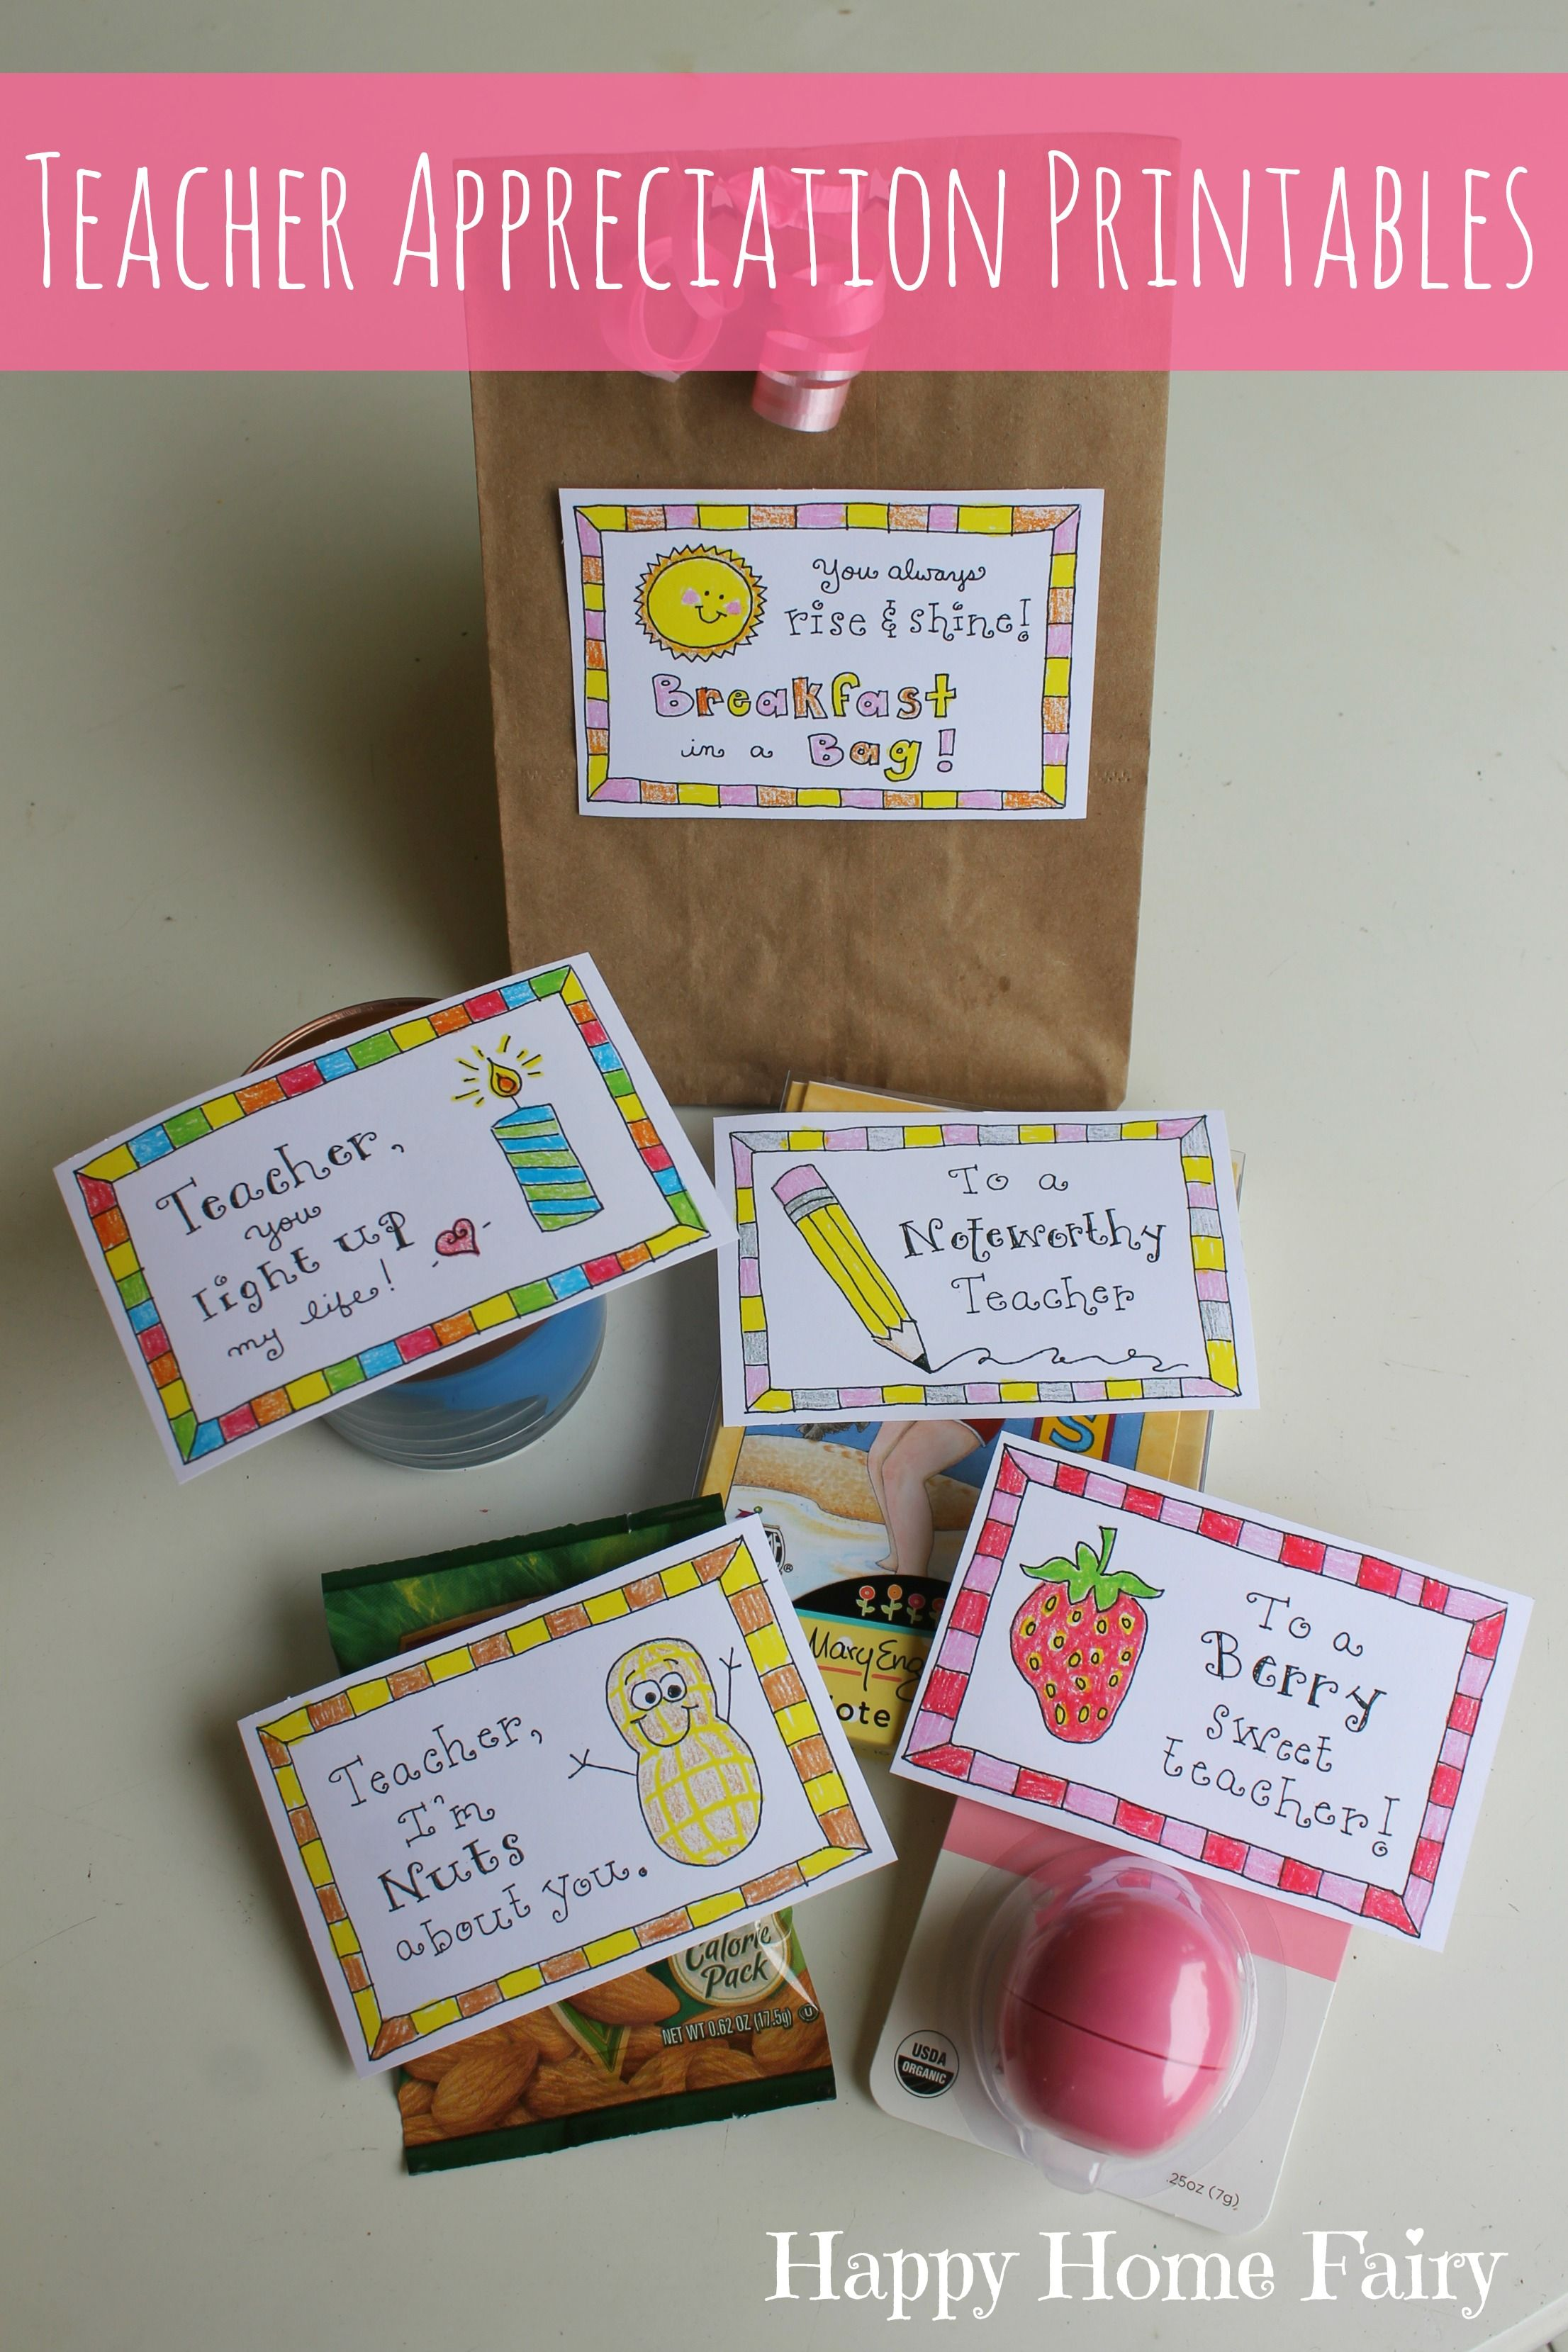 5 Simple Teacher Appreciation Gifts - FREE Printables | My boys ...